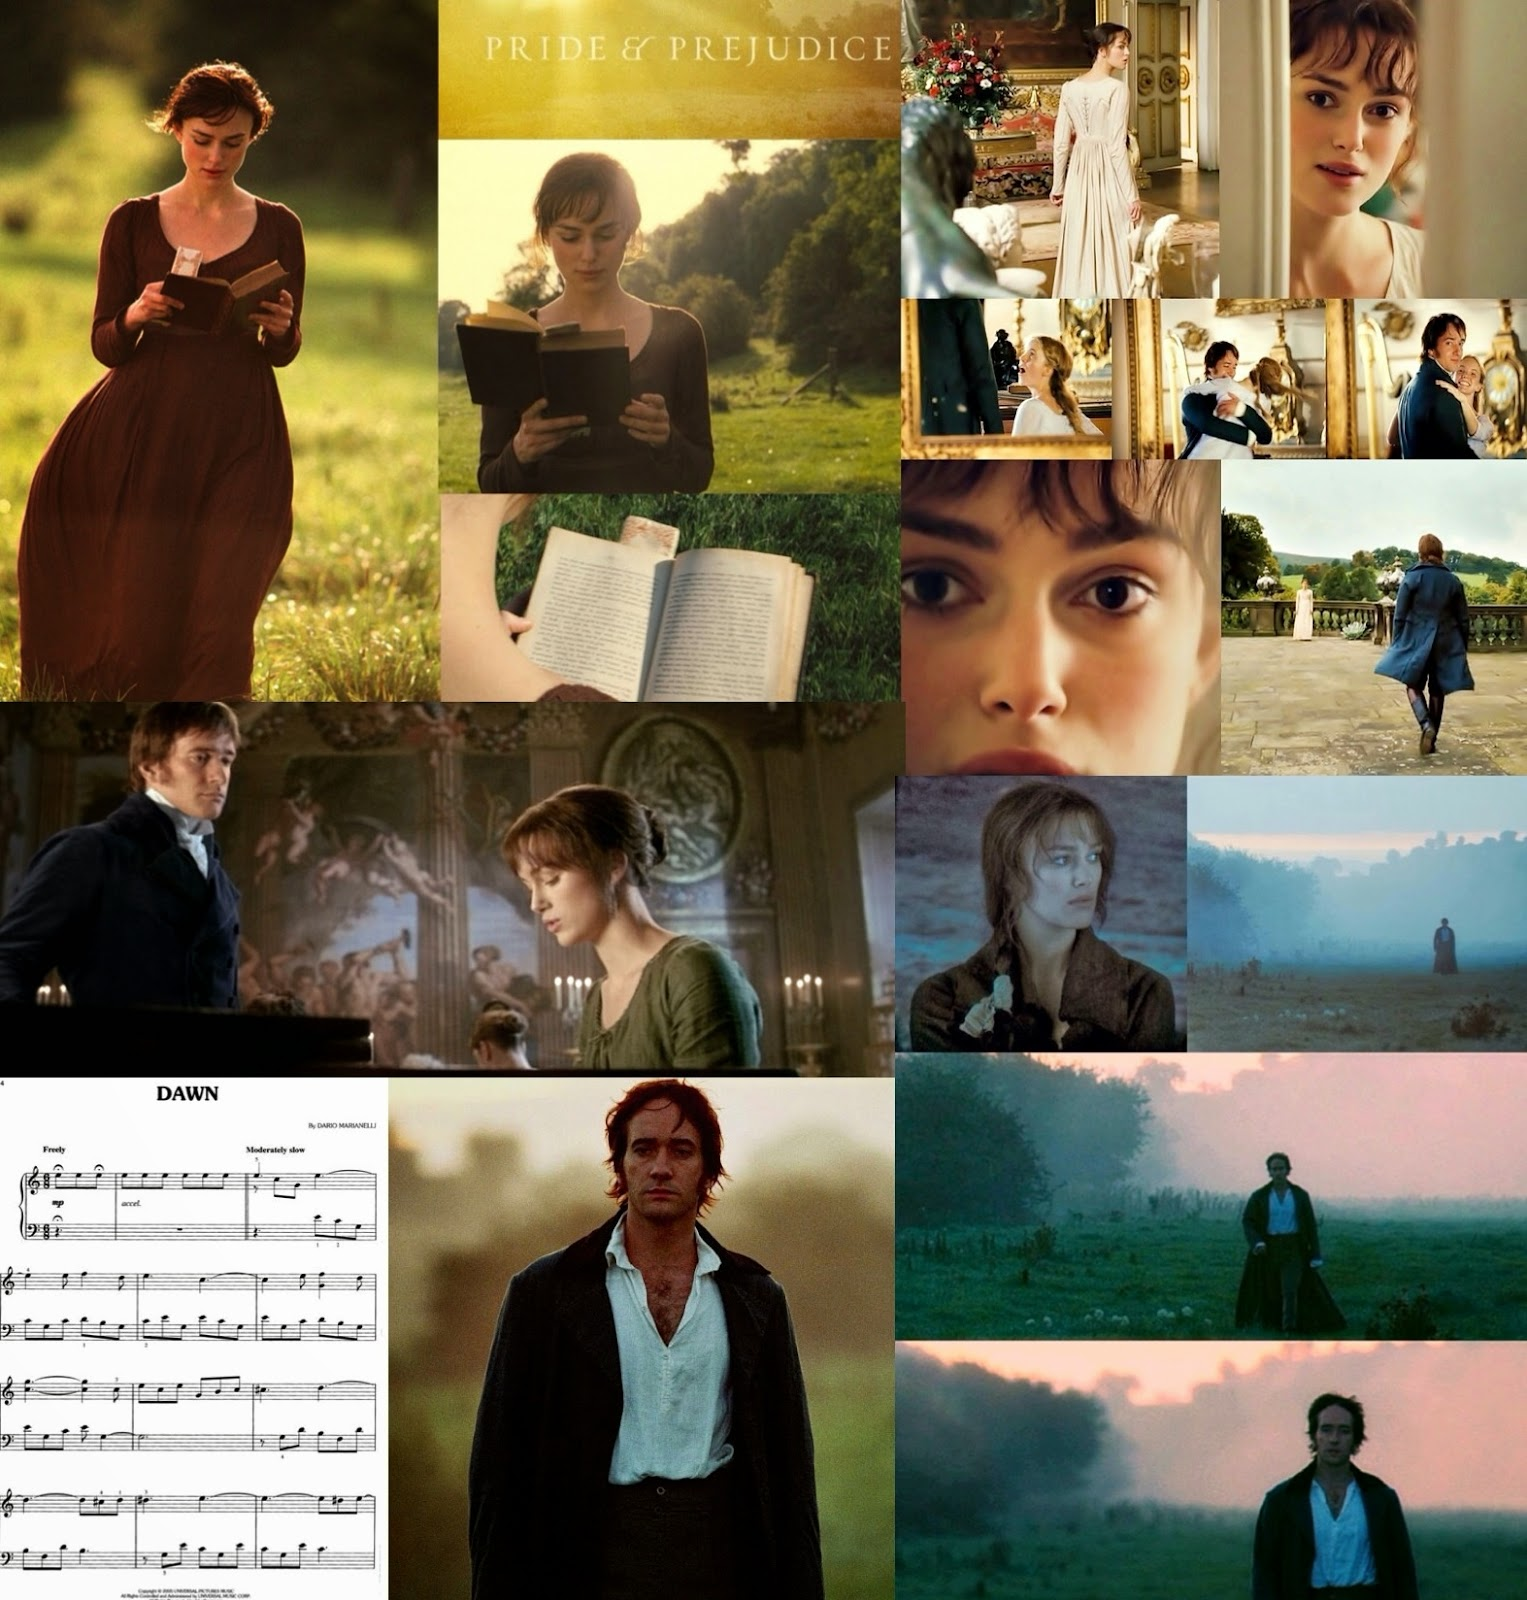 pride prejudice 2005 blog p p blog s movie roundtable the song dawn is used three times we hear at the beginning of the film when elizabeth is walking home while reading her book